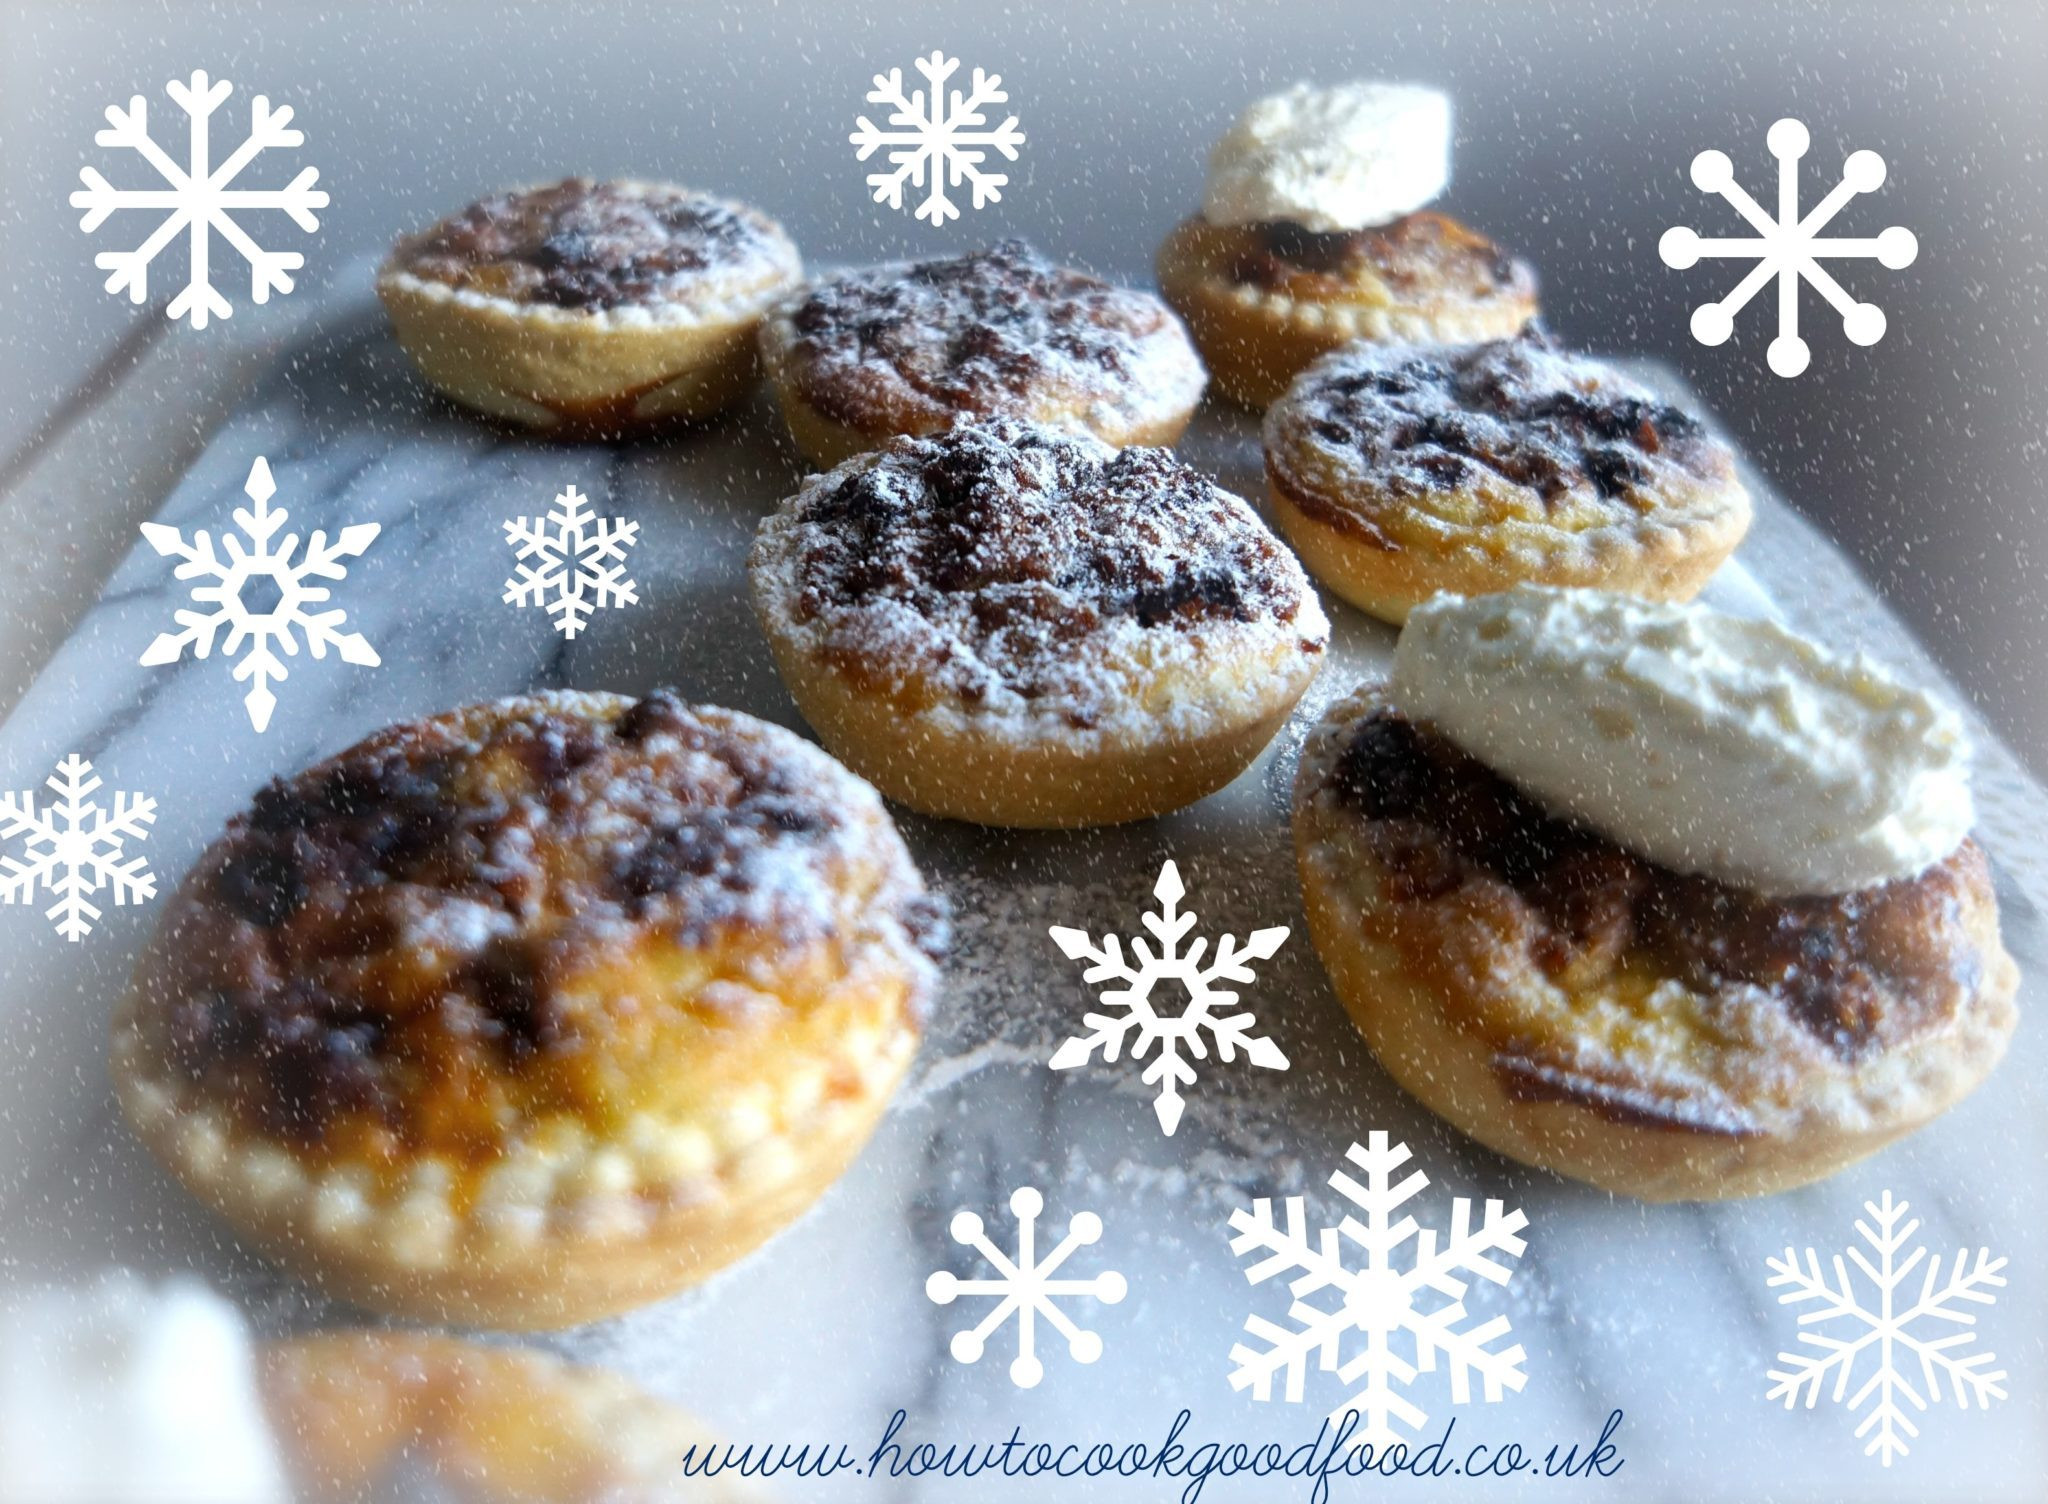 Christmas Pies And Cakes  Christmas Cake Tarts by How to cook good food